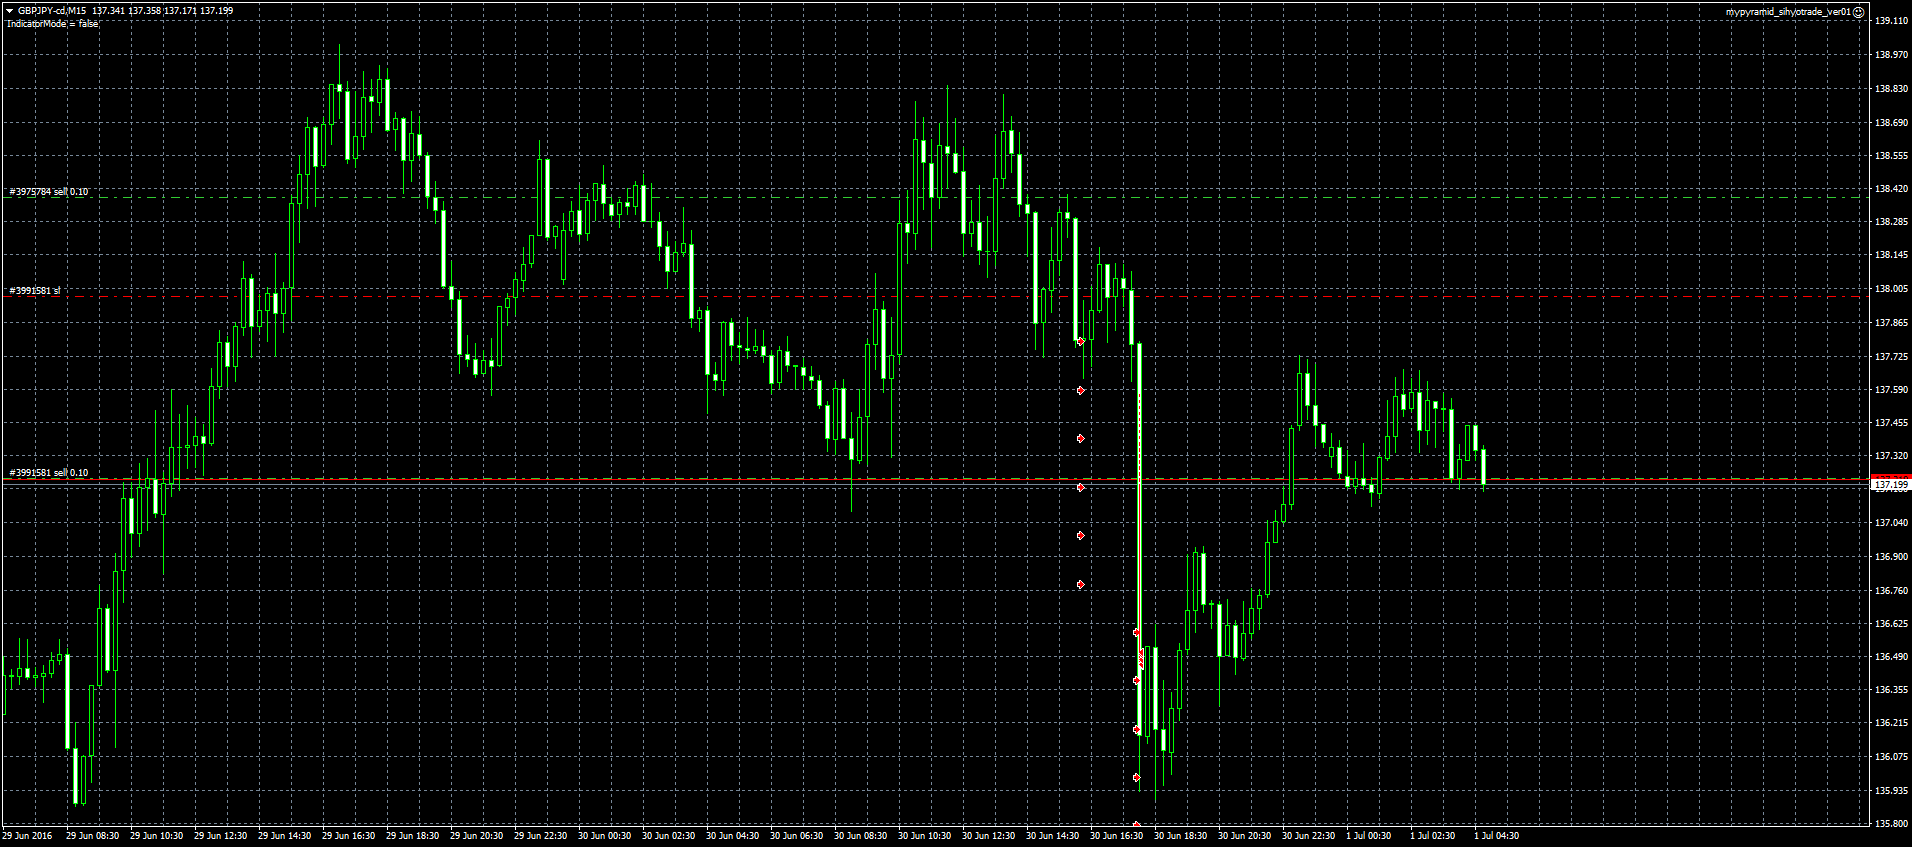 GBPJPY-cdM15-20160630-mypyramid-sell.png